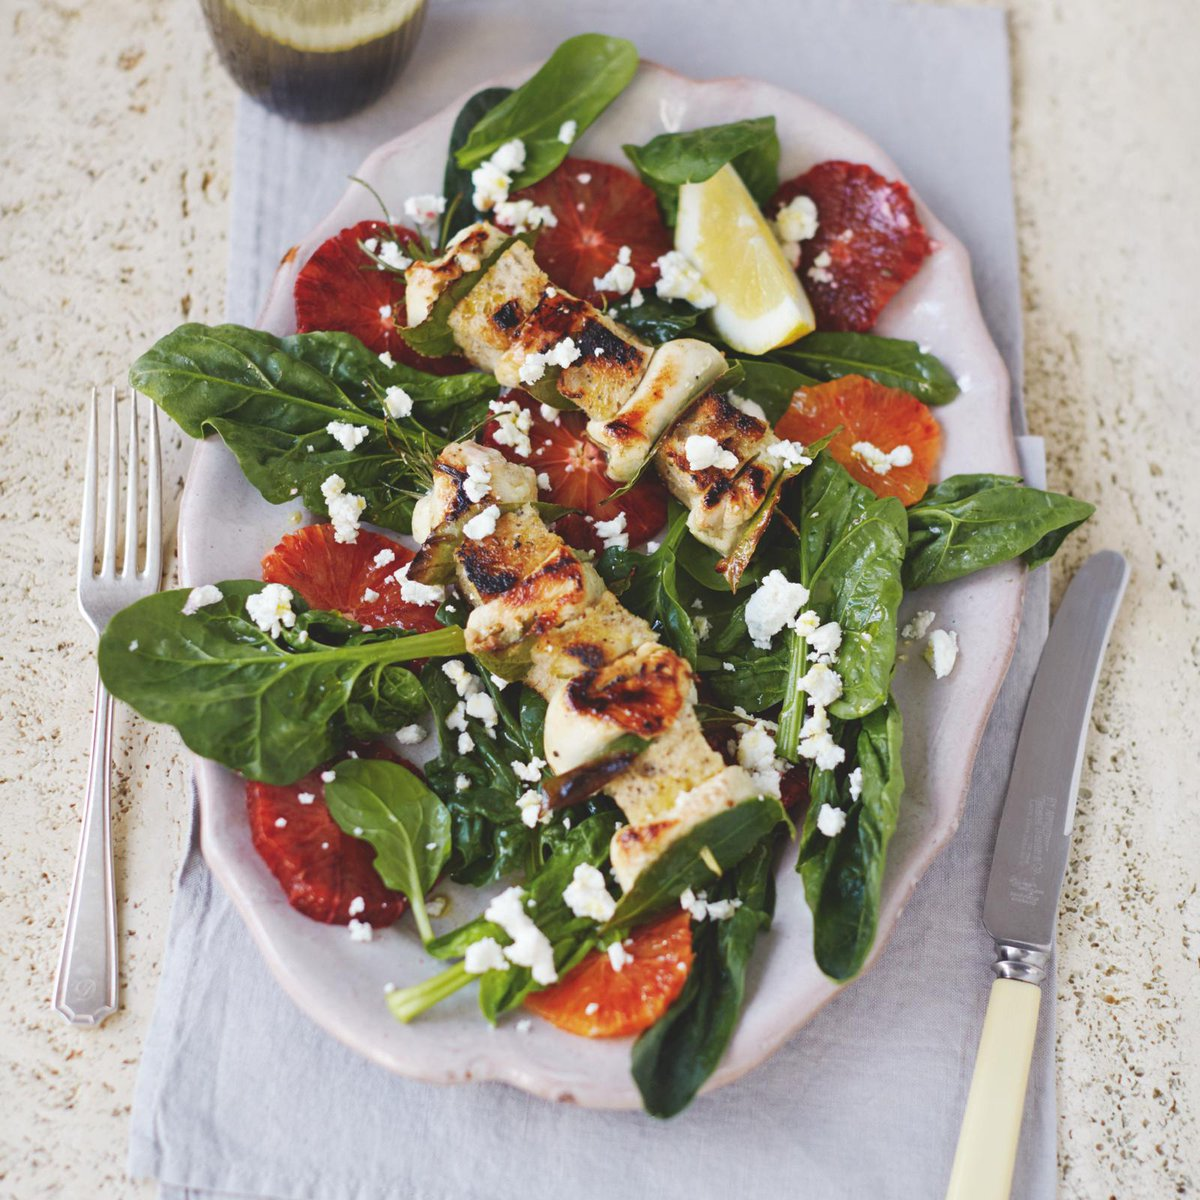 Herb marinated chicken kebabs on a salad of sweet orange slices & feta http://t.co/hy5BsP1OPx #JamiesSuperFood http://t.co/JXieFJ7vcO